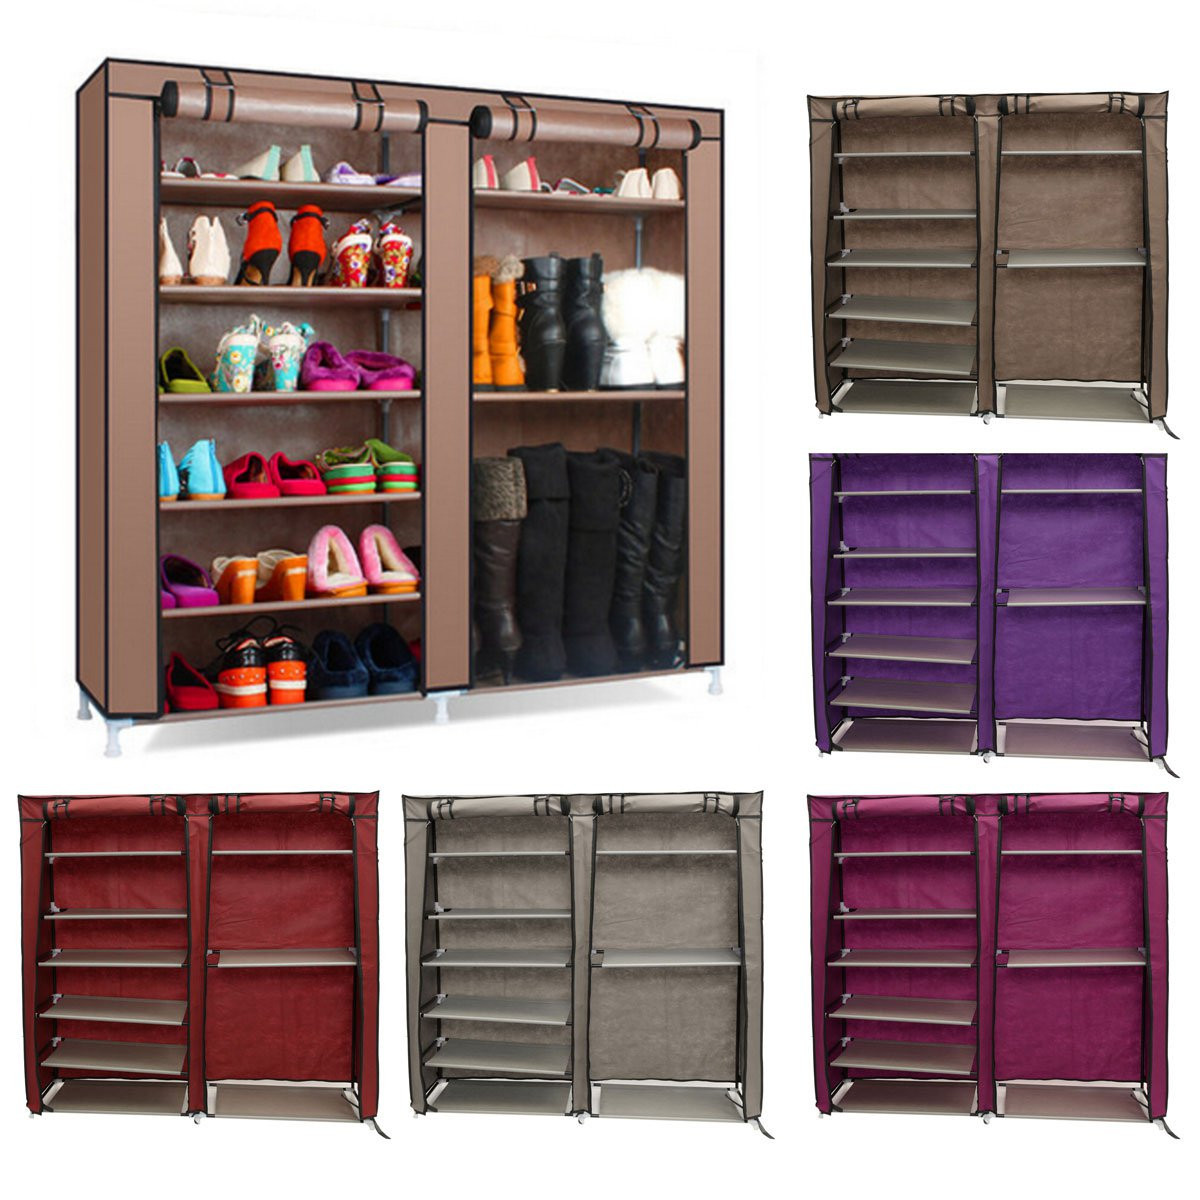 Best ideas about DIY Closet Rack . Save or Pin 6 Tier Covered Shoes Rack DIY Storage Shelf Tidy Organizer Now.